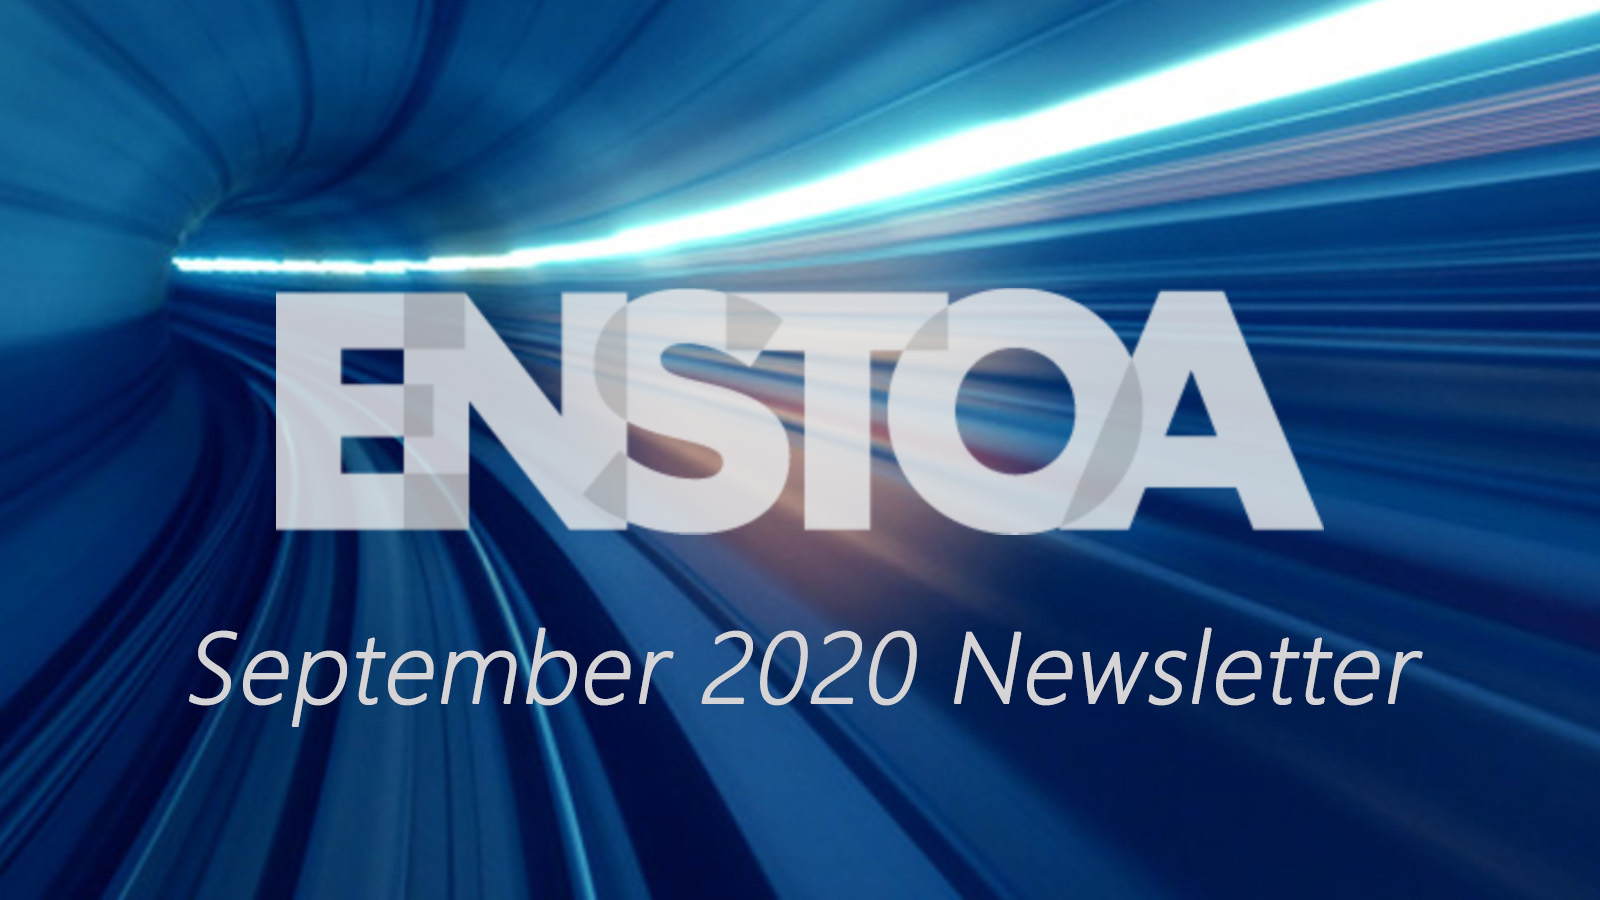 September 2020 Newsletter: It's time to unlock the value of your data